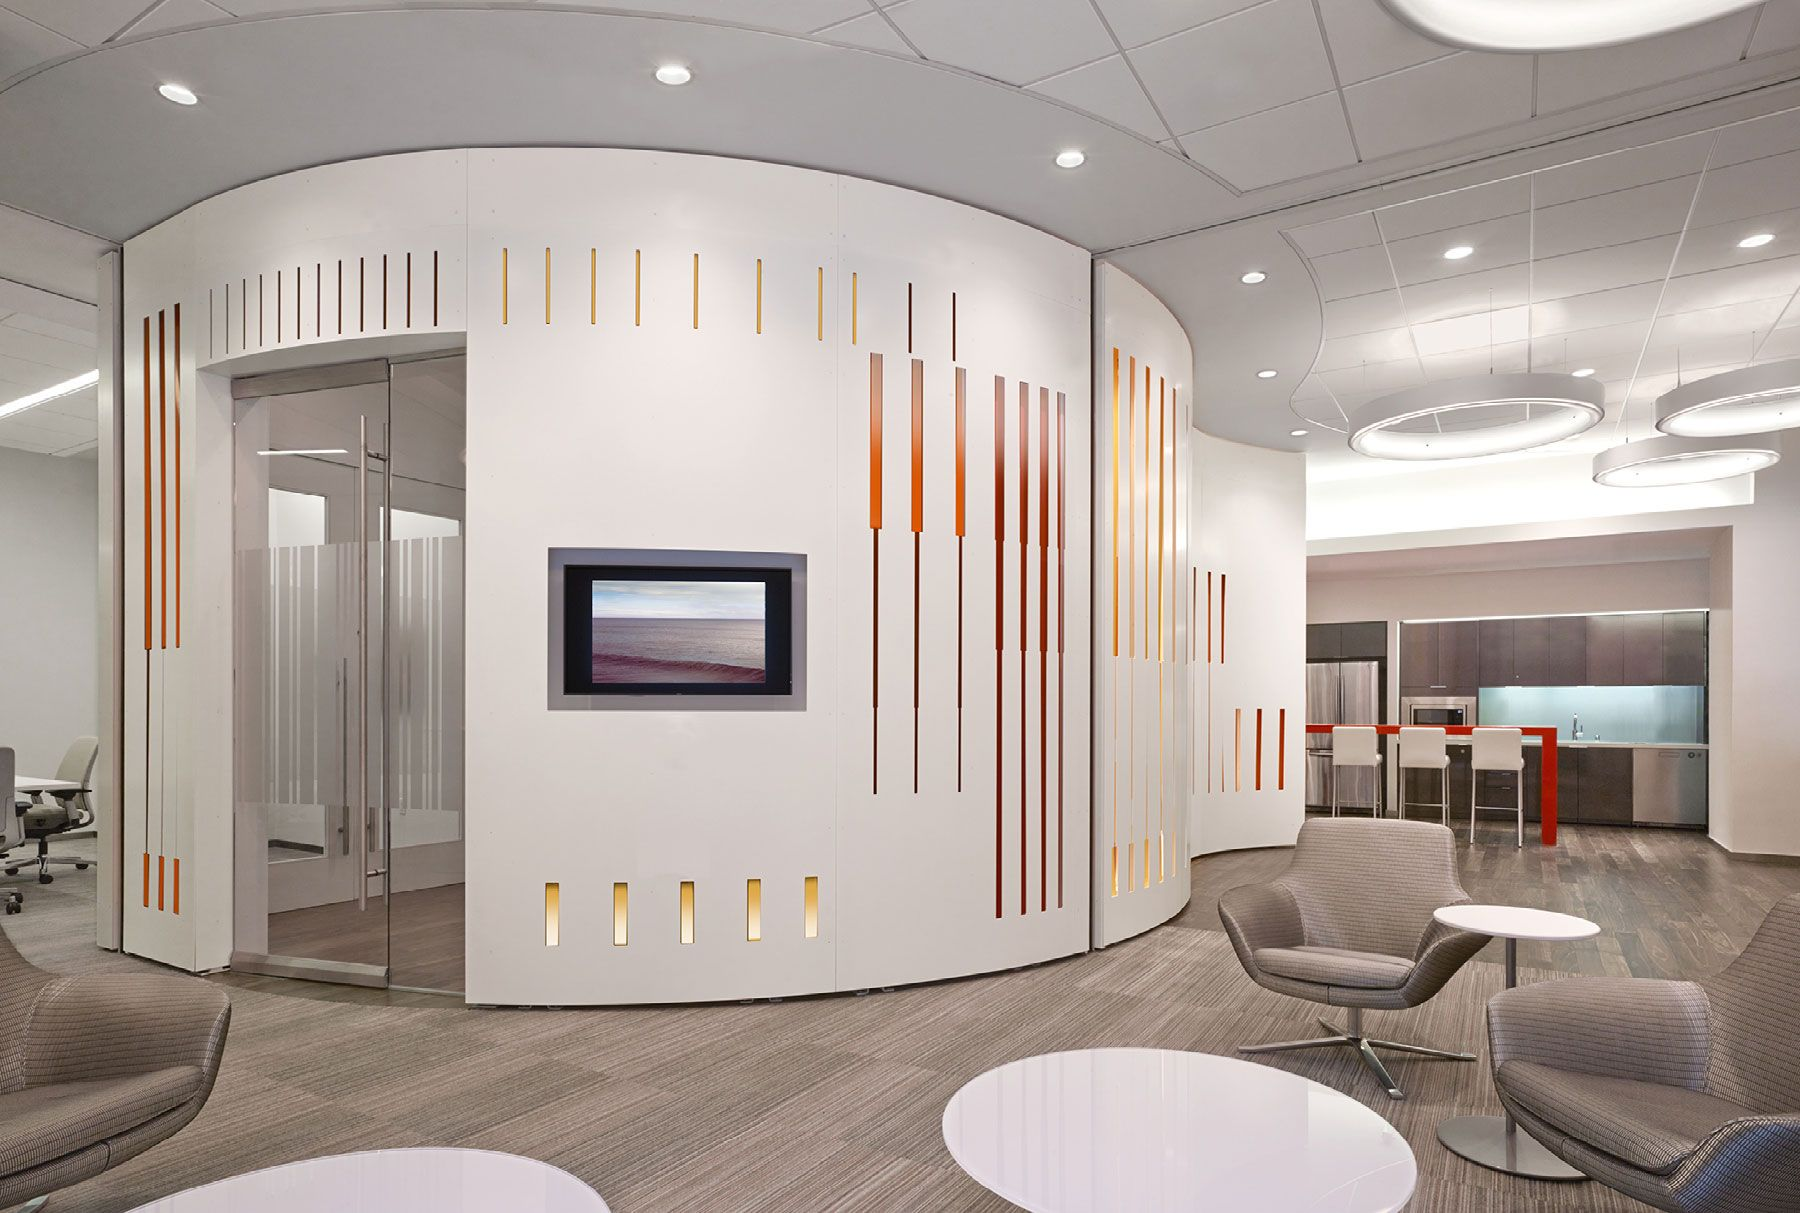 How to create a feature wall with photos - Solutions Studio Worked With Aecom La To Create A Feature Wall In The Lower Lobby Of